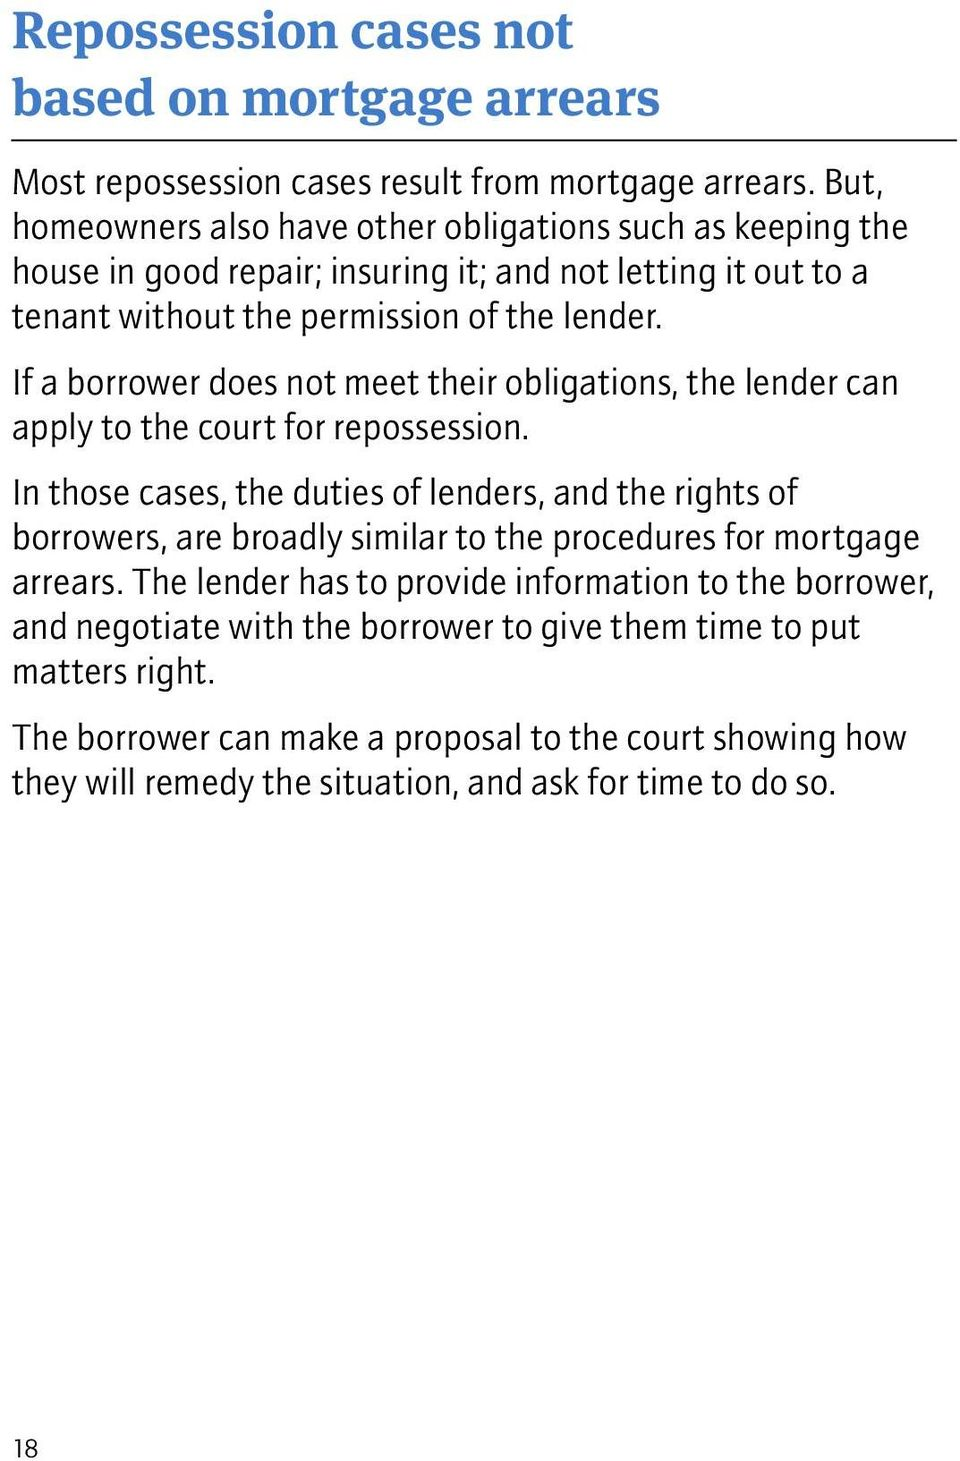 If a borrower does not meet their obligations, the lender can apply to the court for repossession.